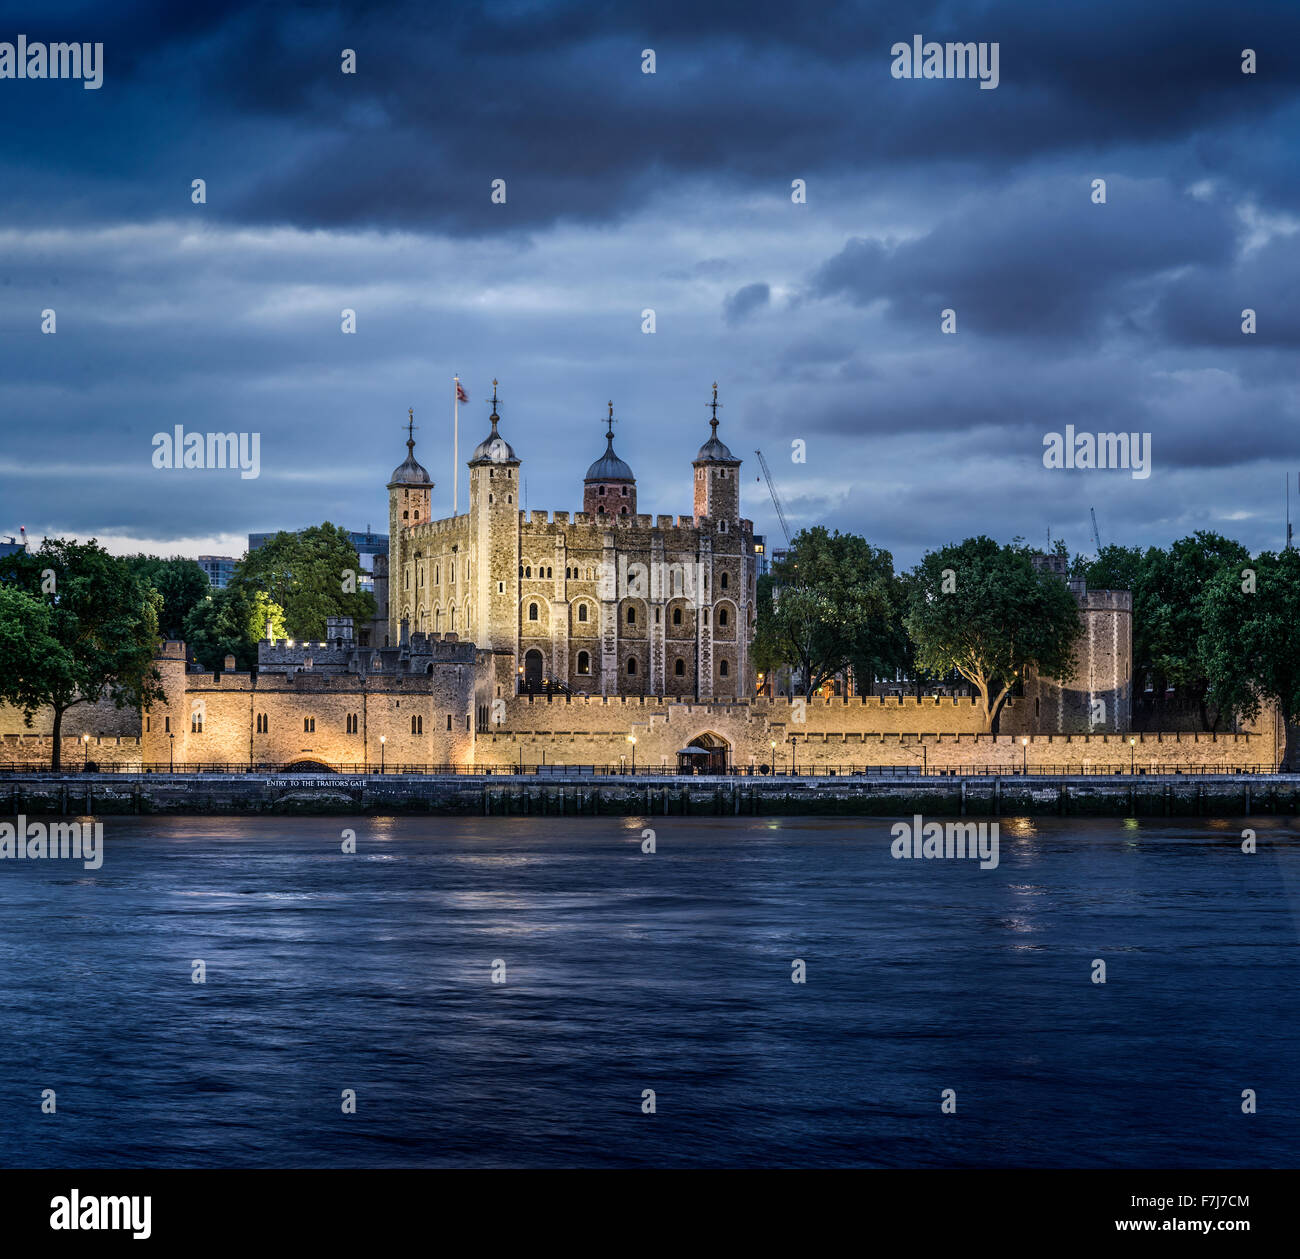 UK, England, London, Tower of London at night - Stock Image